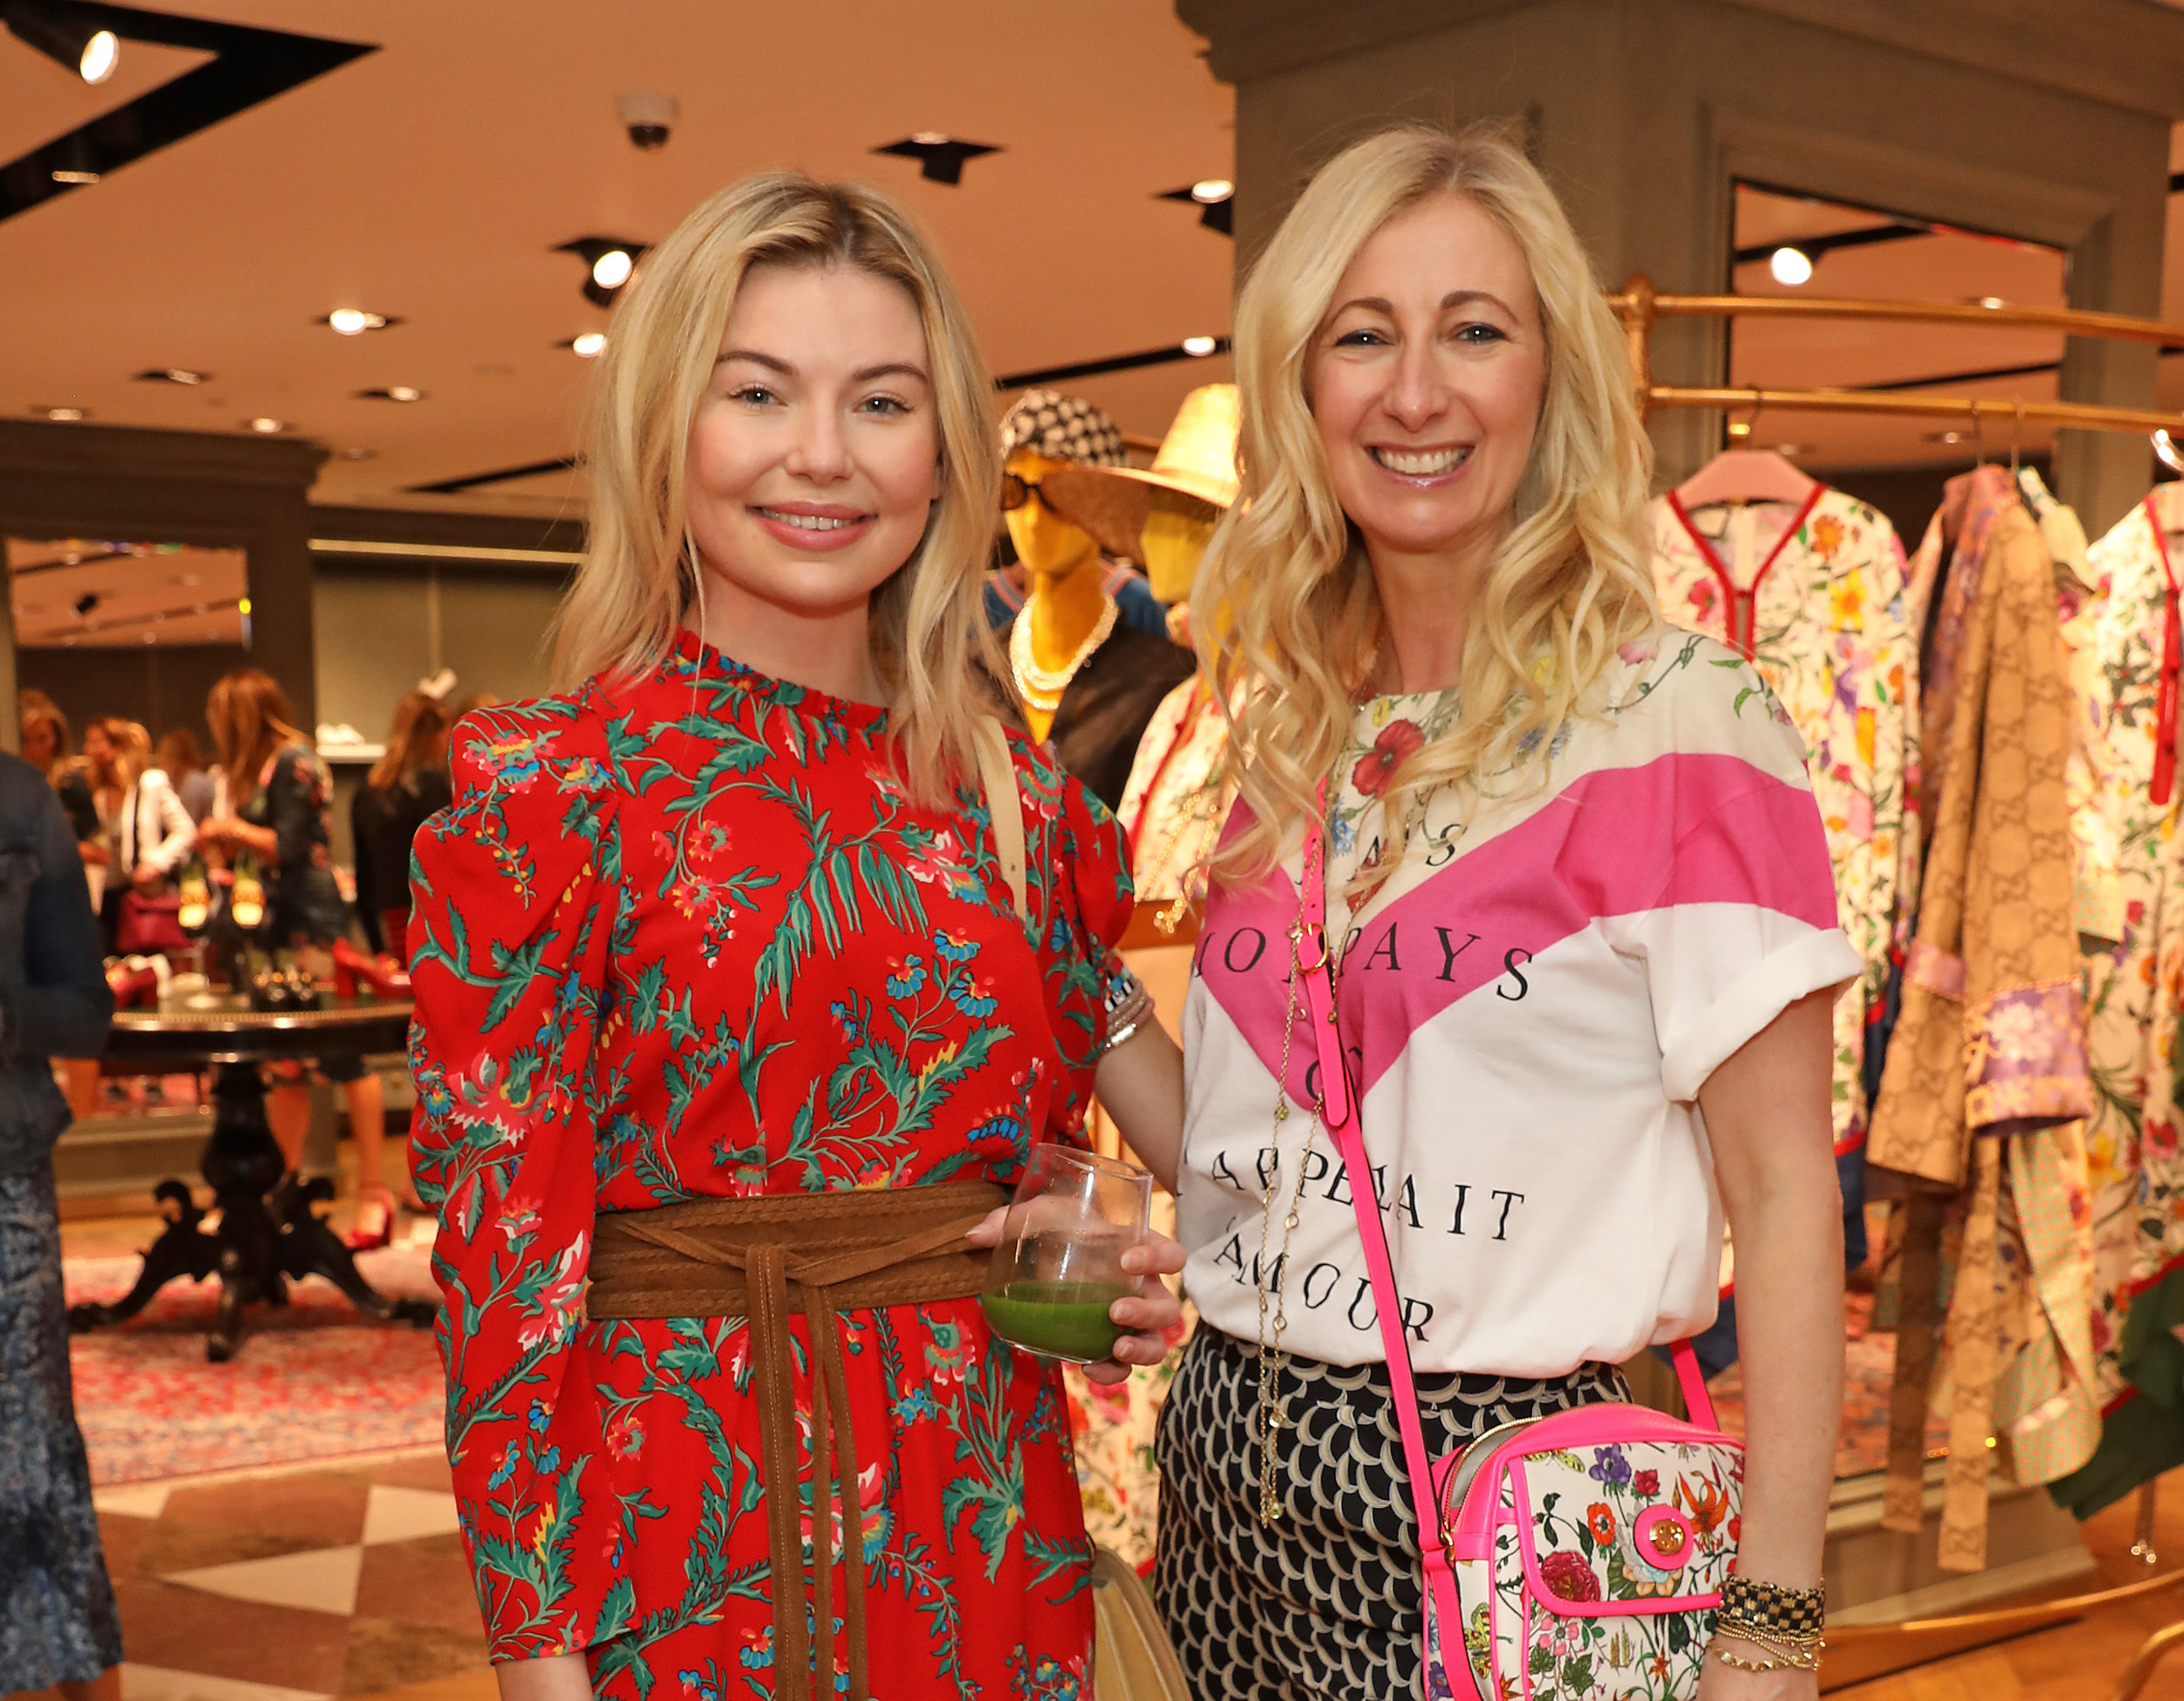 DMB-Launch of the exclusive Lady Garden T-shirt at Breakfast at Gucci029 .JPG